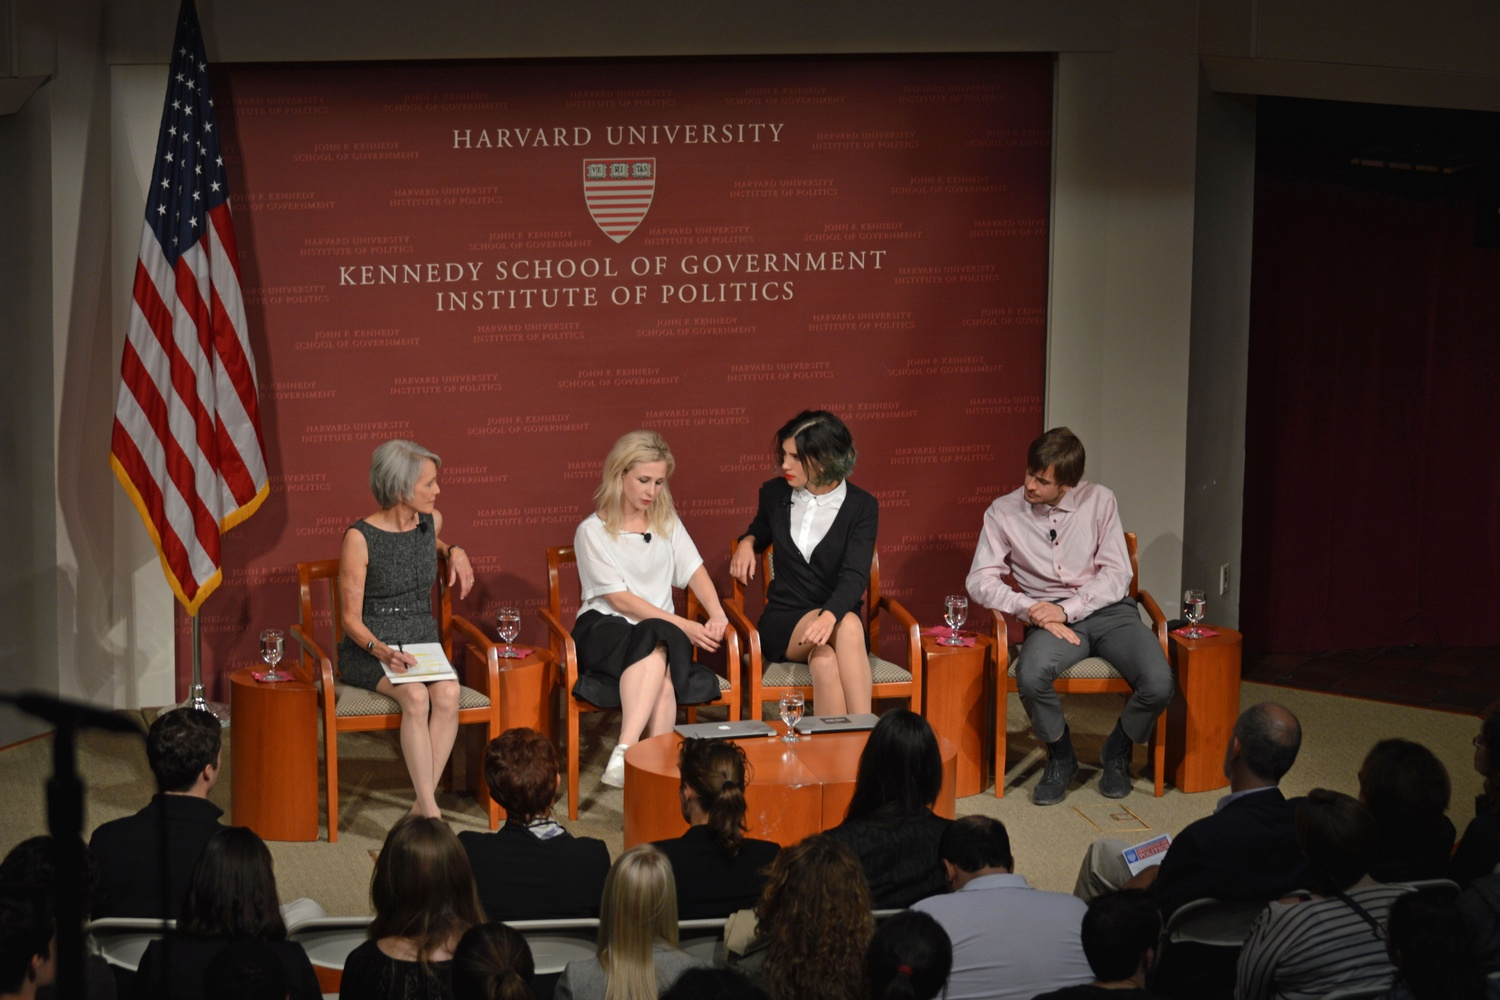 From the left, Jill Dougherty, Masha Alekhina, Nadya Tolokonnikova, and Pyotr Verzilov discuss the implications of Pussy Riot in Russian politics at the IOP in September.